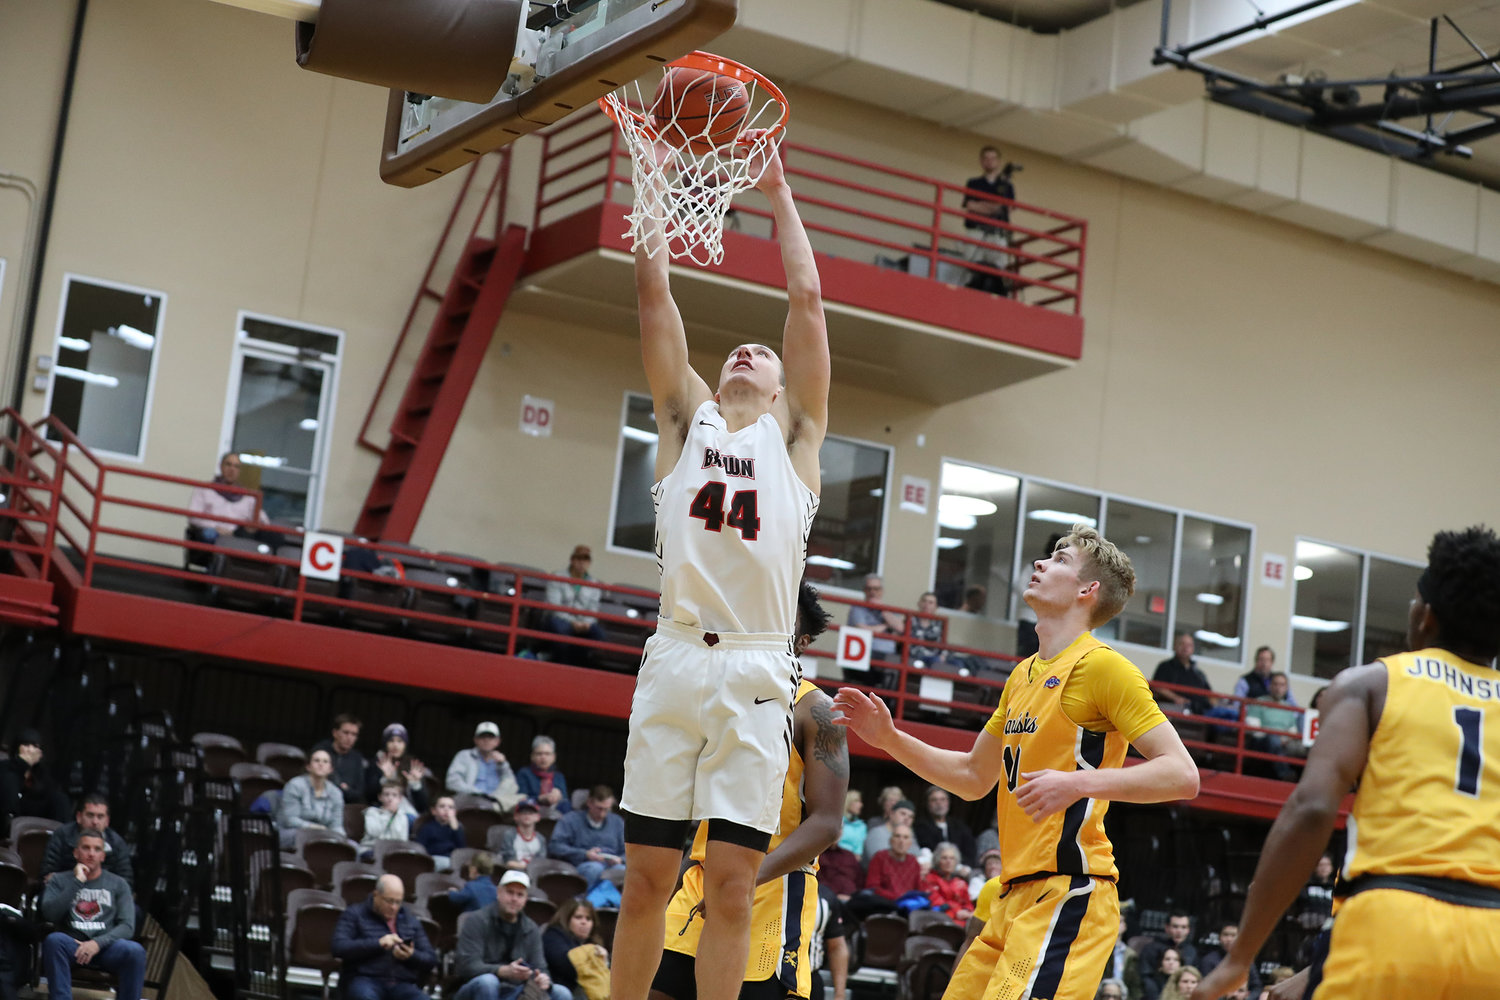 Brown University's Matt DeWolf only started playing organized basketball in the eighth grade. He later starred at Barrington High School and Northfield Mount Hermon.